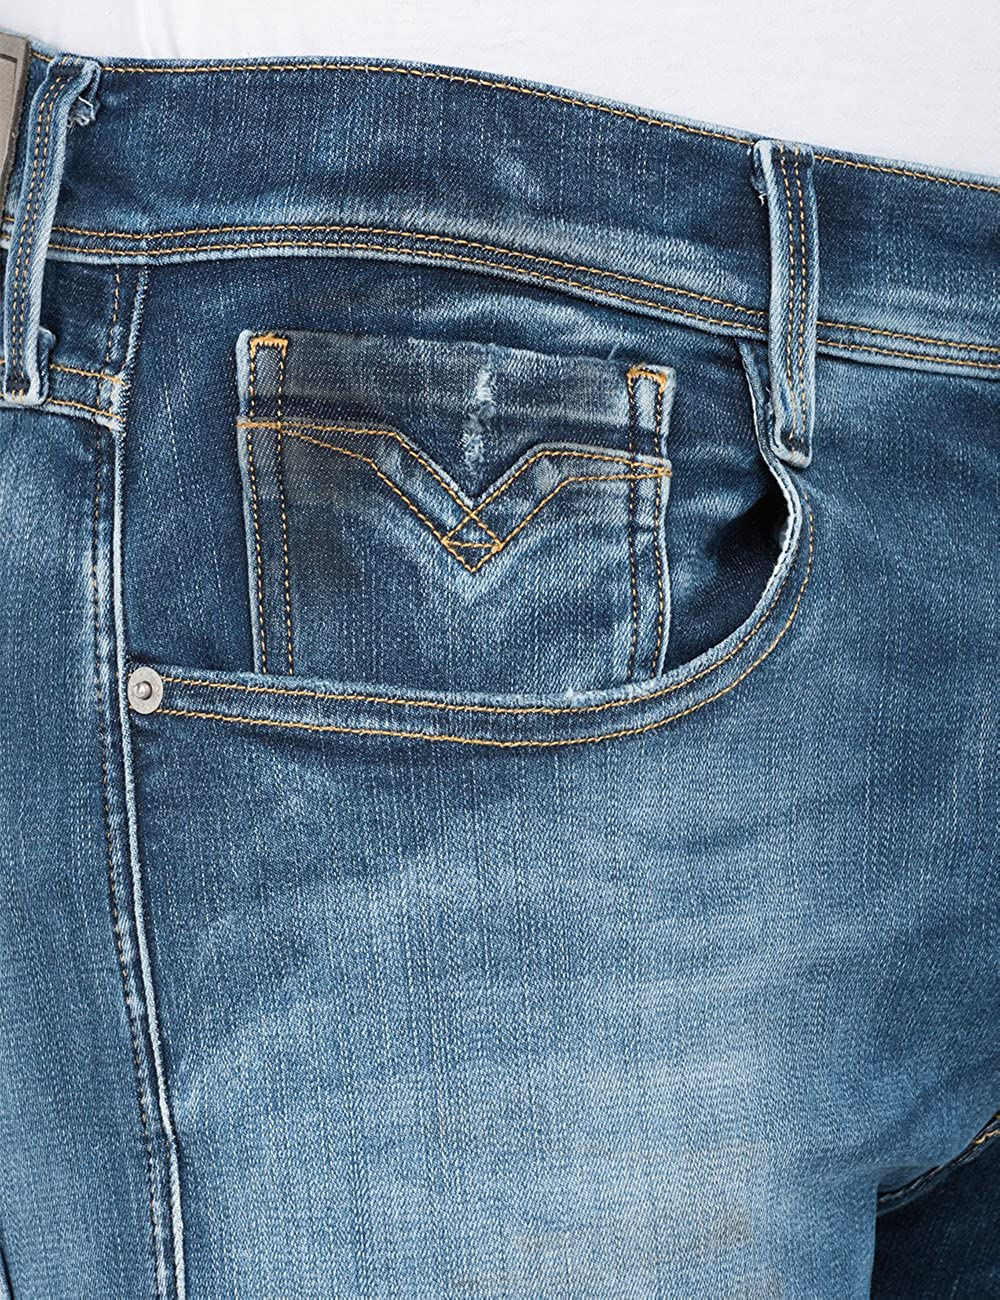 Replay Mens Anbass Hyperflex Jean in Washed Blue